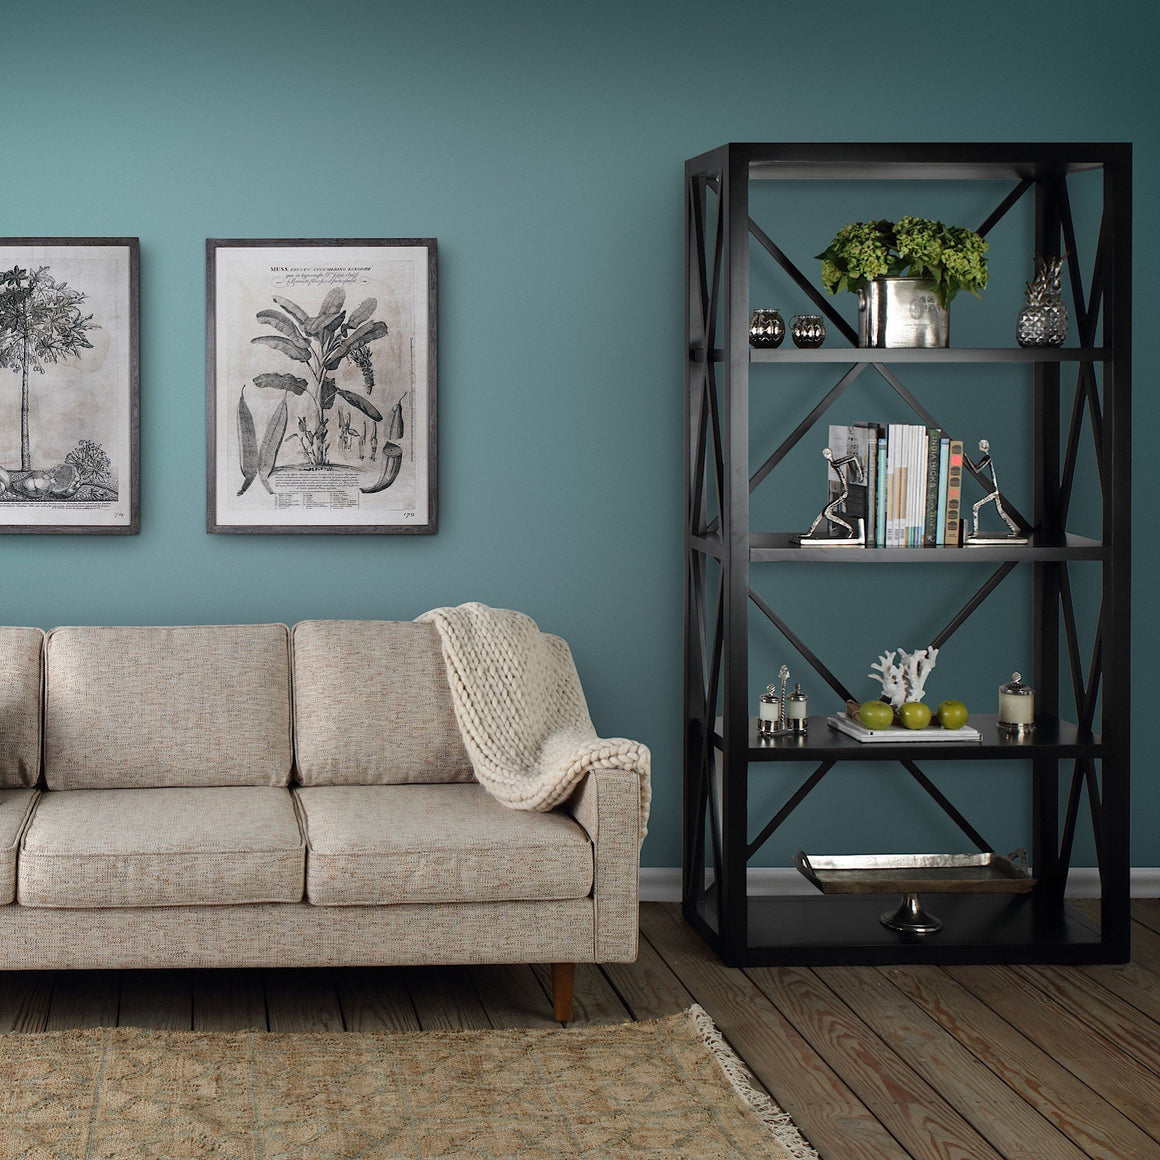 Sorrento Bookshelf Black